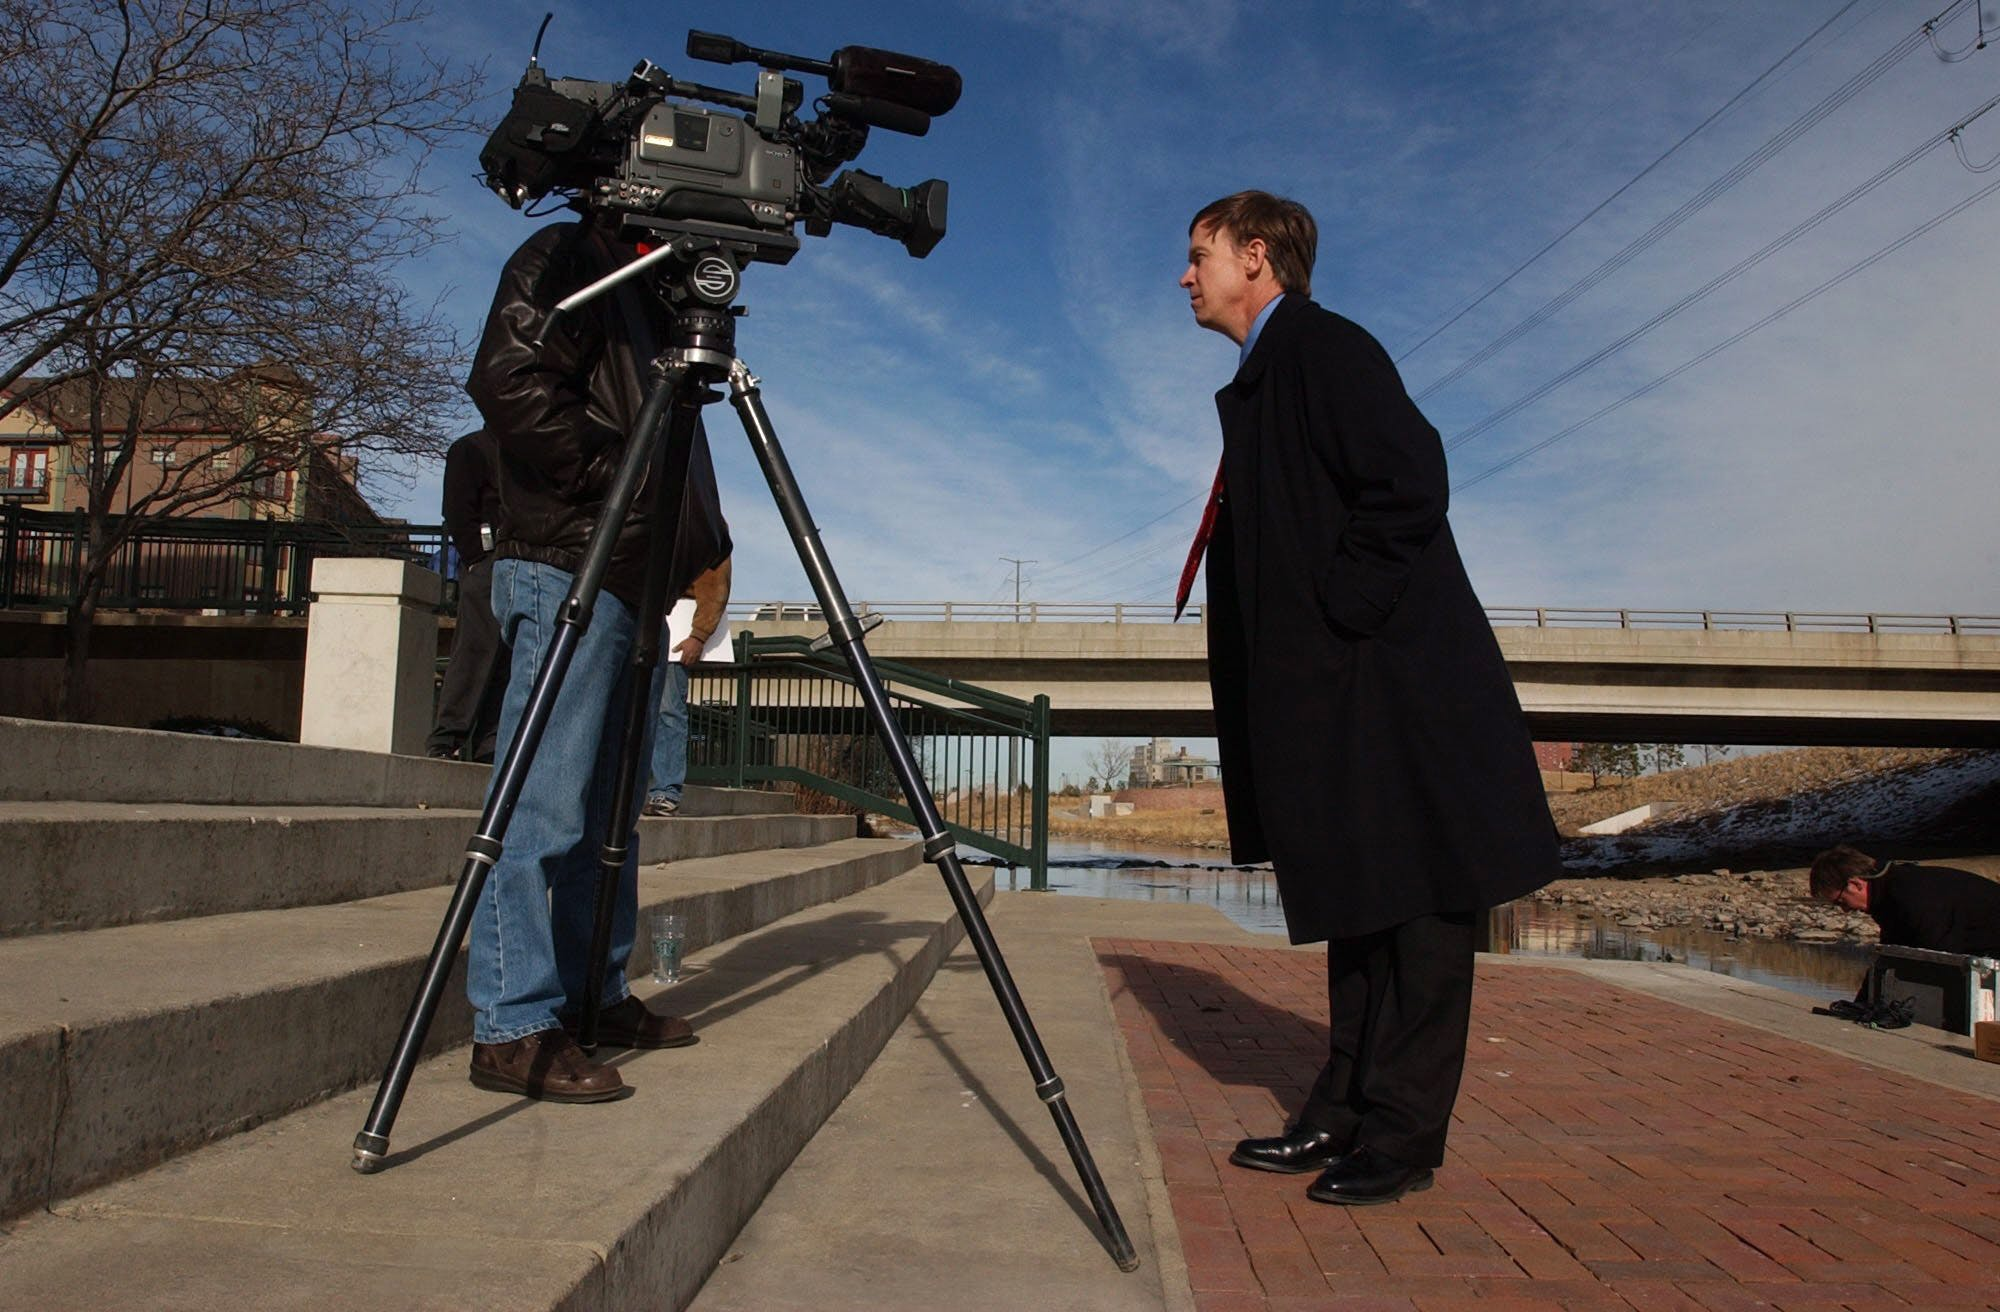 Denver, Colo., Feb , 2002 -- Denver businessman John Hickenlooper campaigns for mayor of Denver - talking to the television camera - after rolling out his water policy in Confluence Park. Photo by Brian Brainerd  (Photo By Brian Brainerd/The Denver Post via Getty Images)